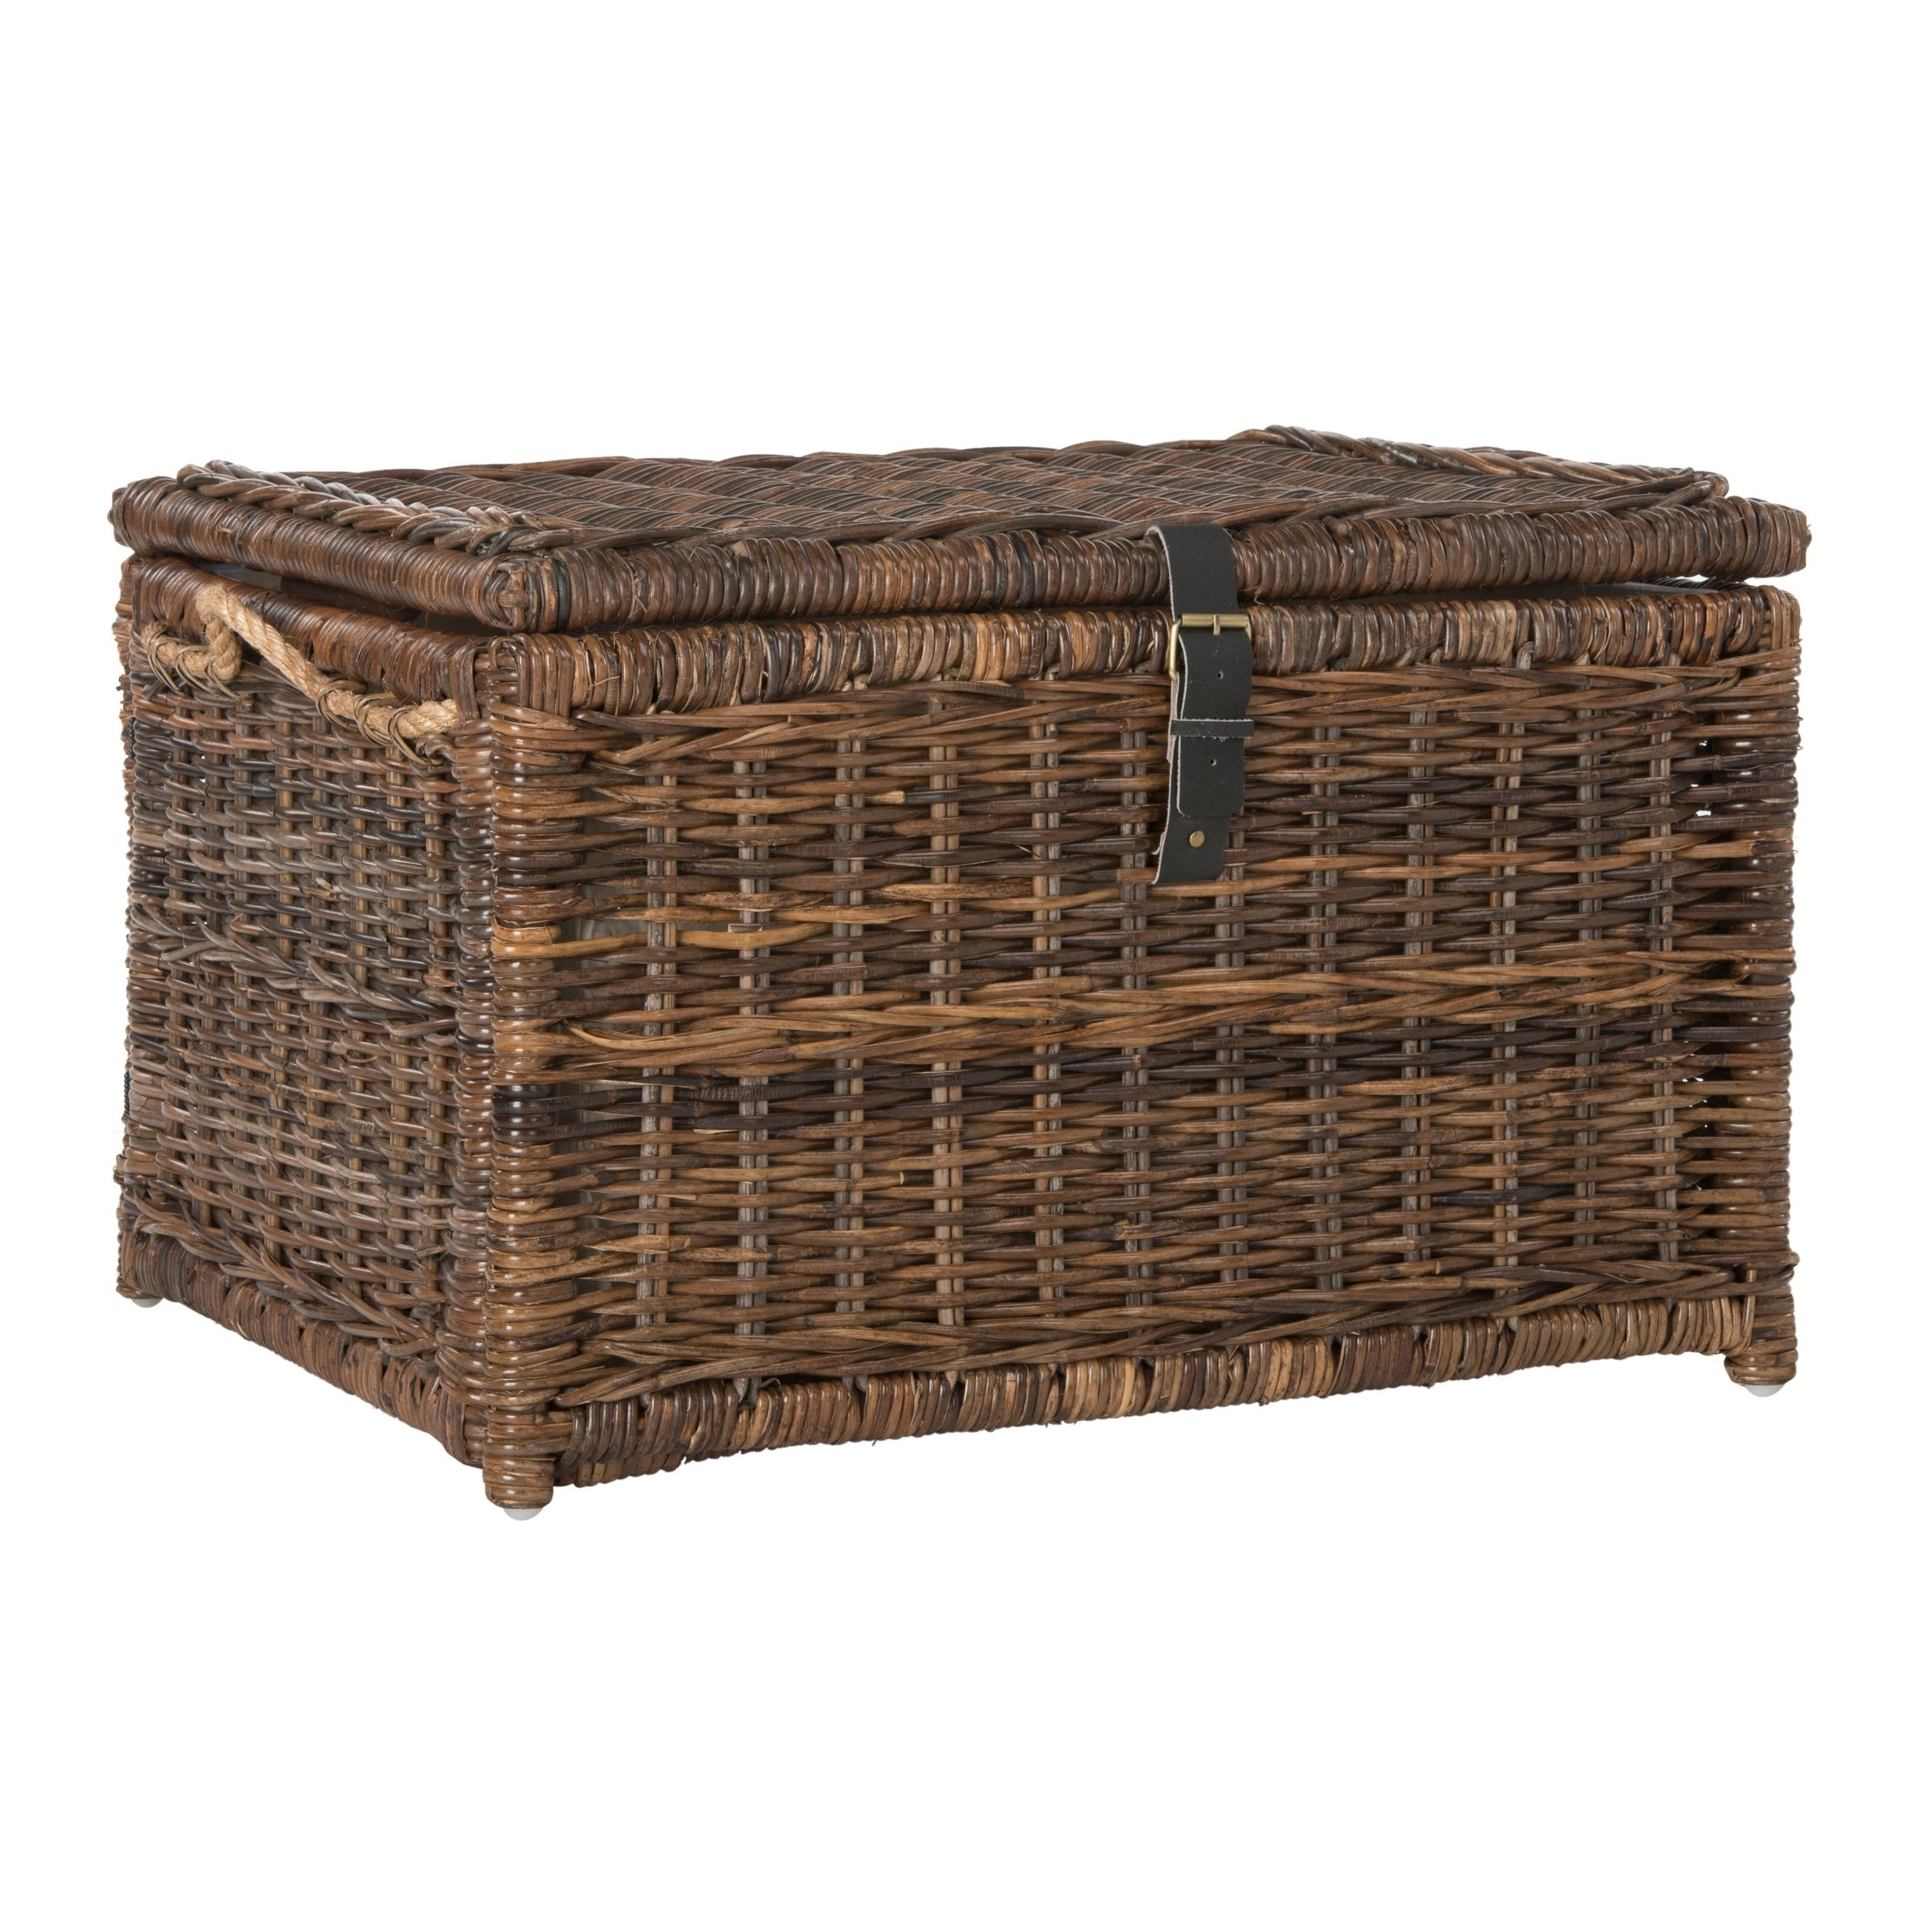 Shop happimess Caden 30  Wicker Storage Trunk Brown - On Sale - Free Shipping Today - Overstock.com - 17818391  sc 1 st  Overstock.com & Shop happimess Caden 30